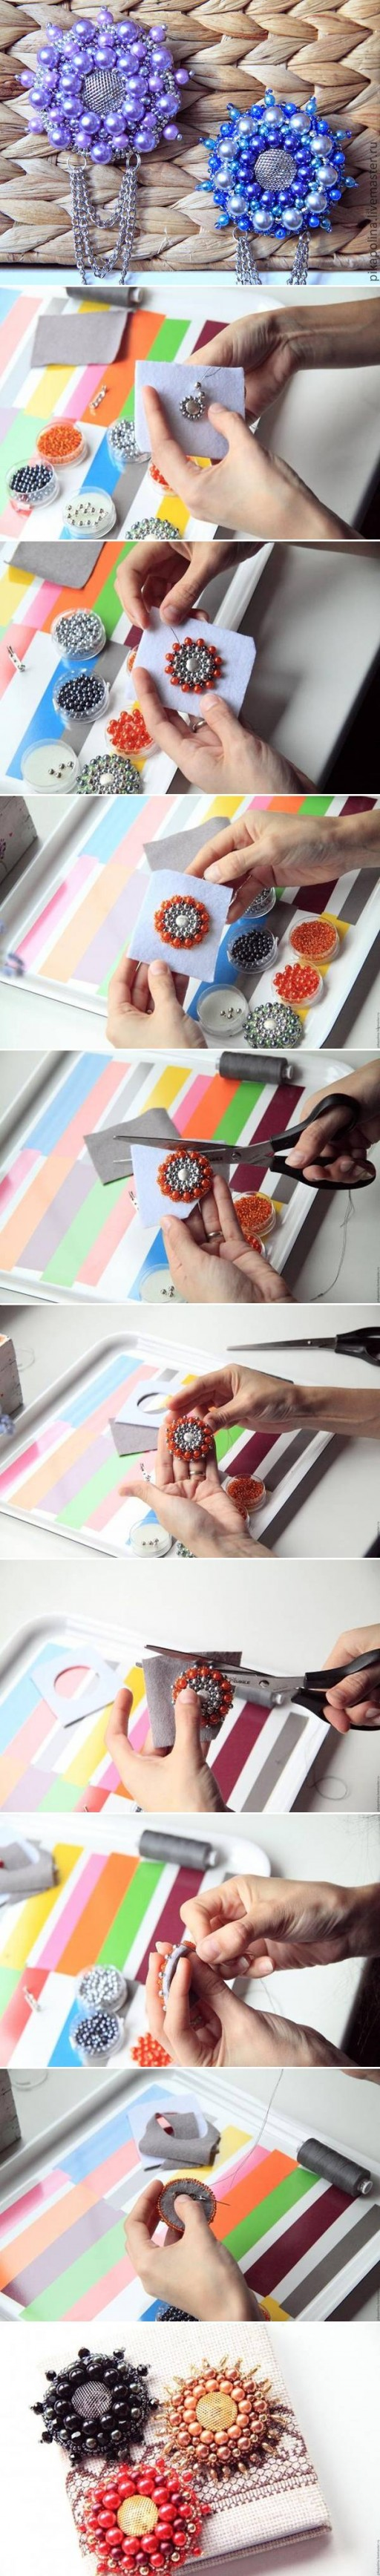 How To Make Beads Flower Brooch step by step DIY tutorial instructions